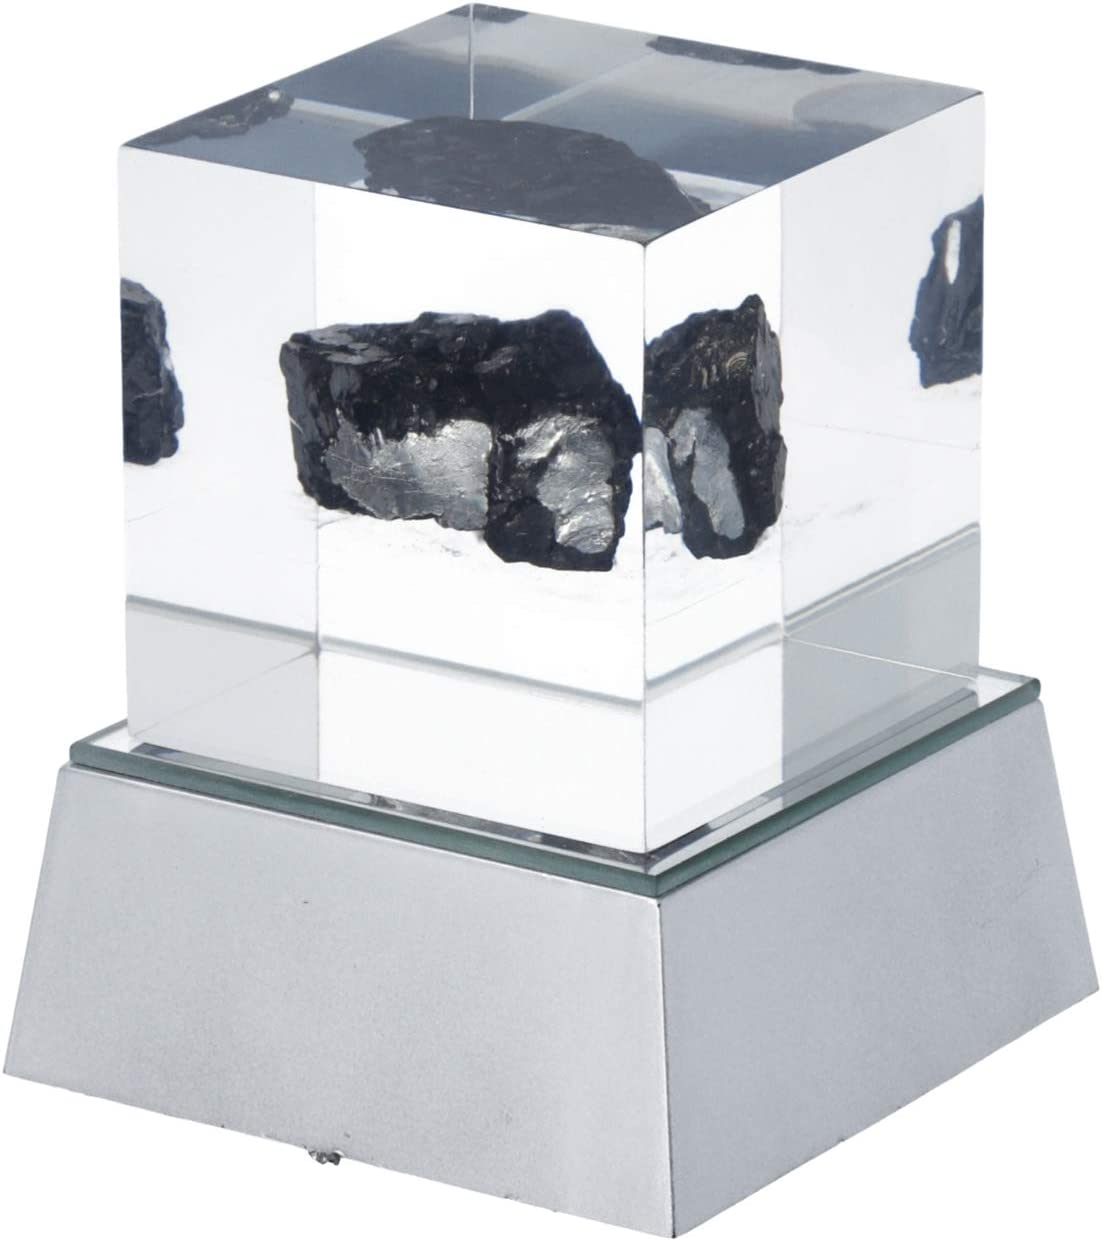 Transparent Healing Pain Relief Karelian Shungite Rough Cube with Color Changing Base Home Office Table Decor Decorative Sculpture Figurines Antique Handmade Gifts Centrepiece